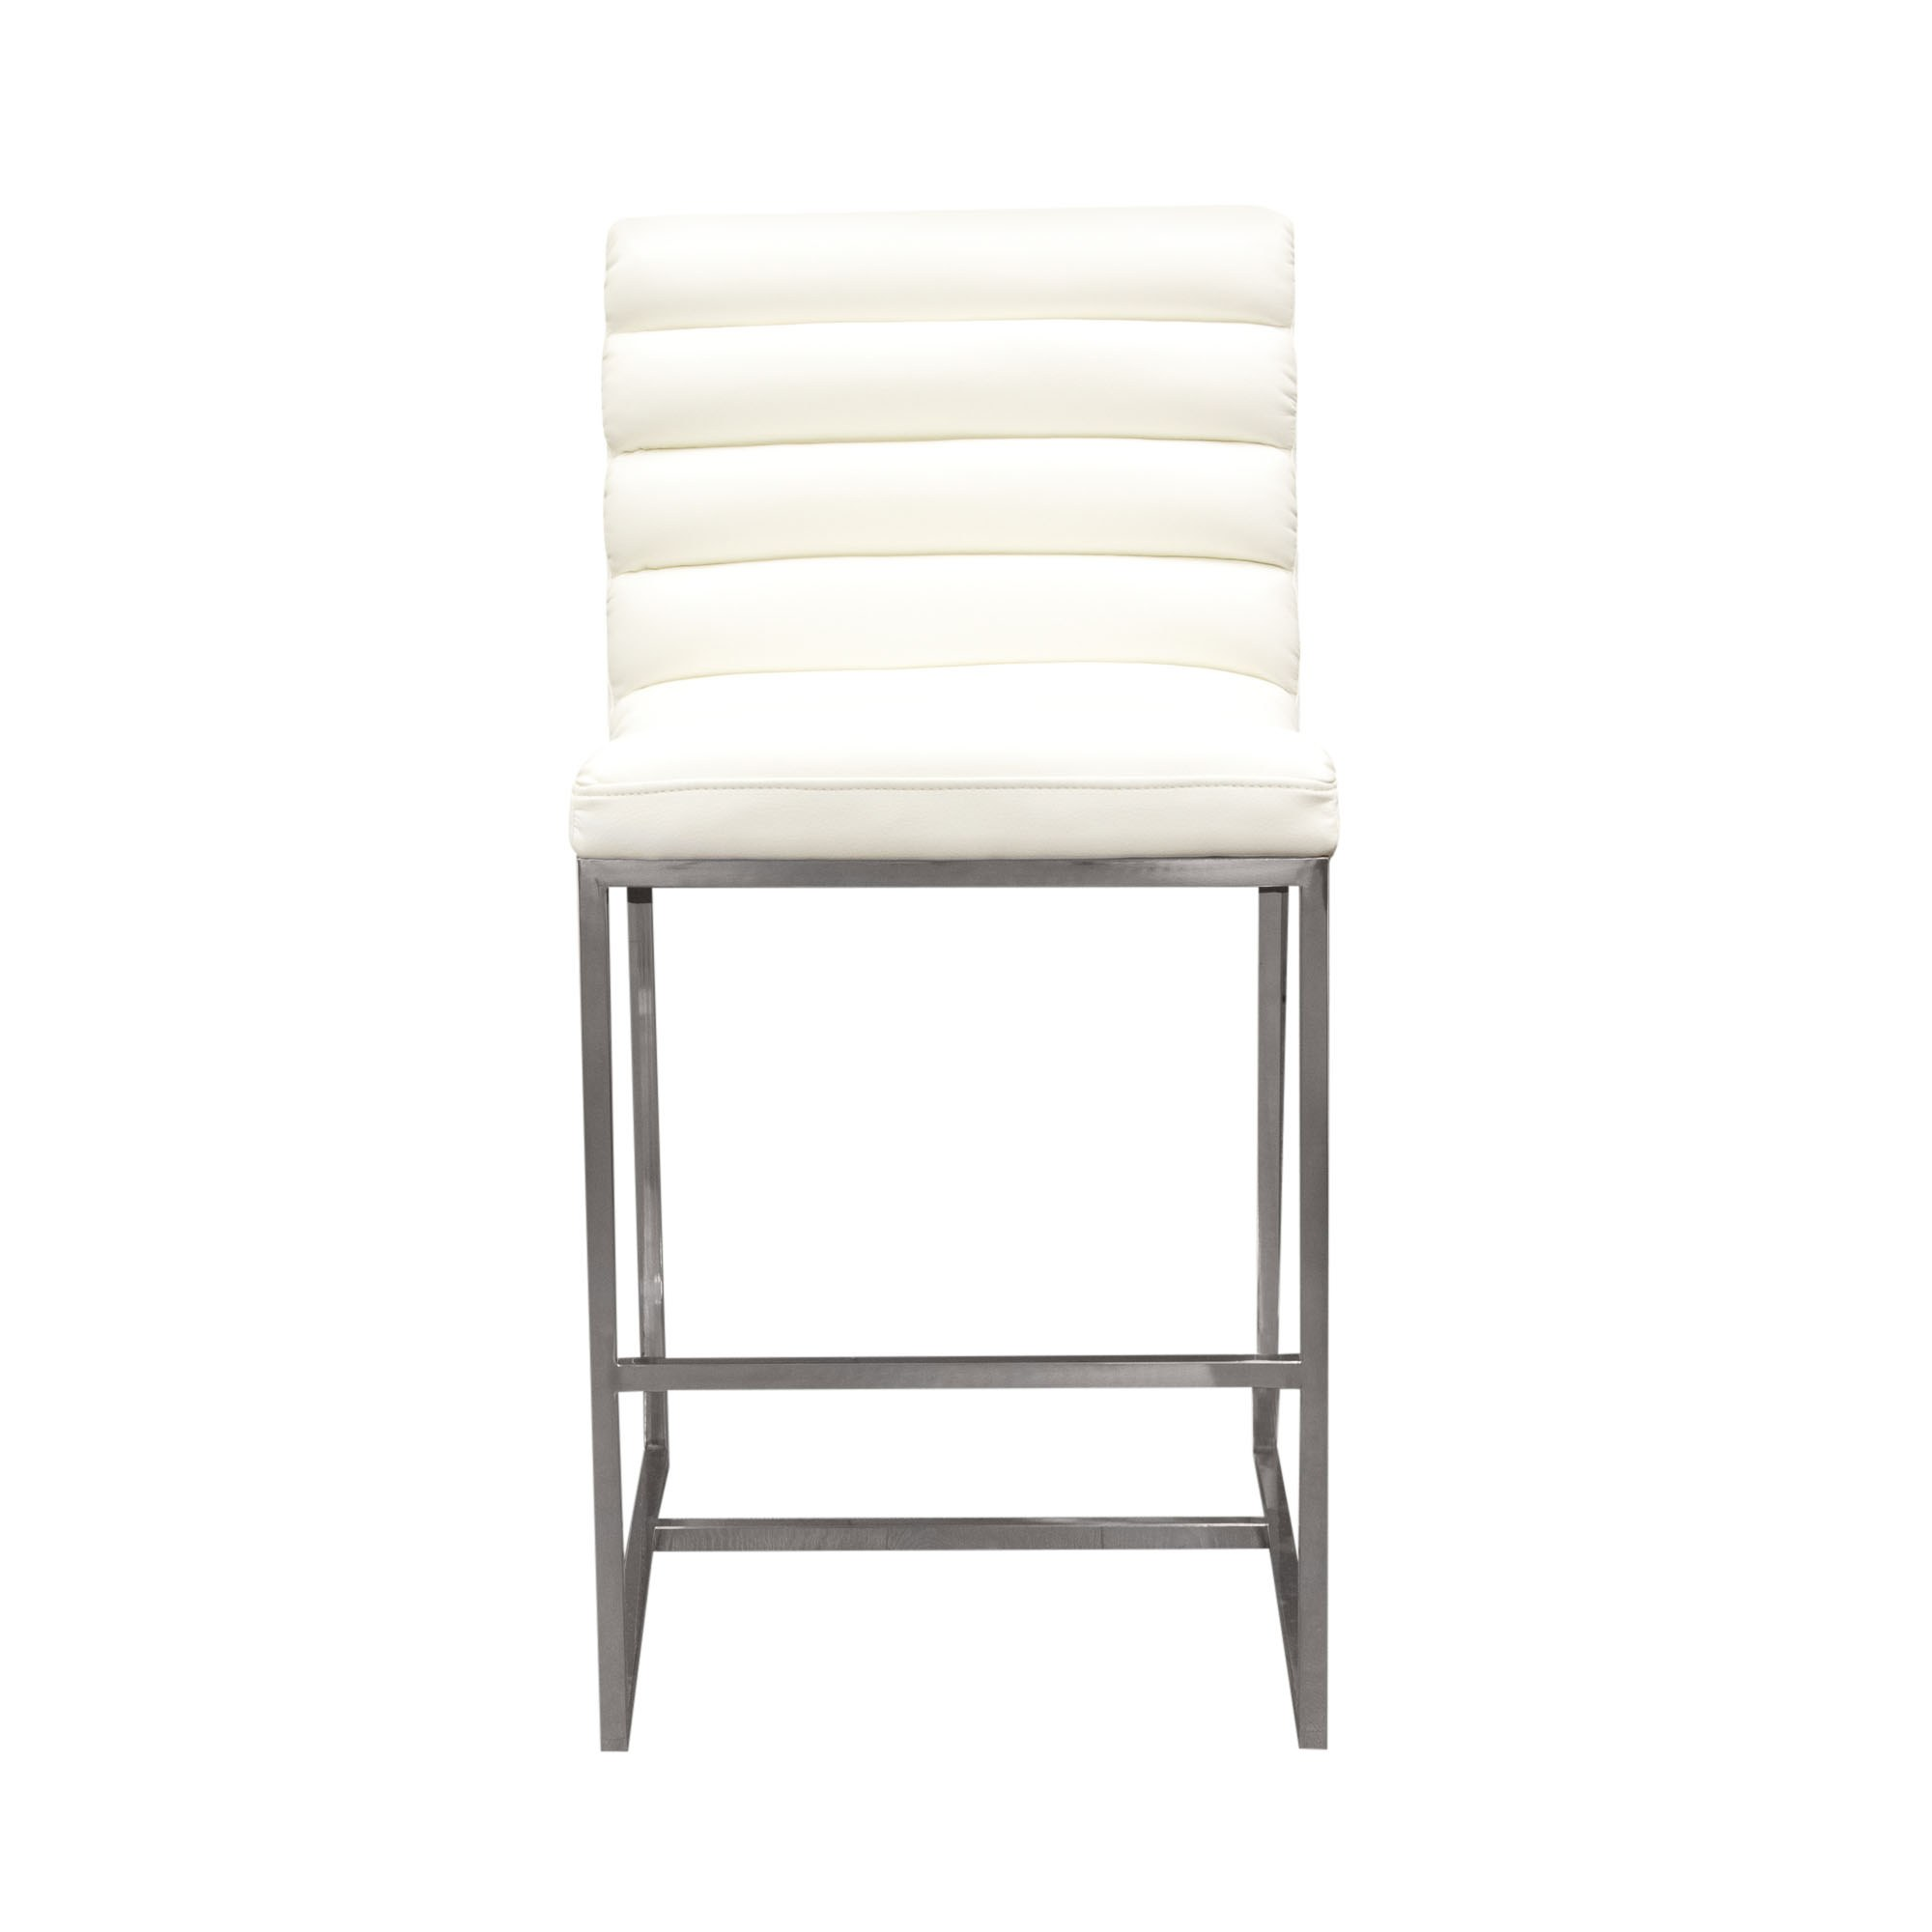 steel chair size padded shower bardot counter height with stainless frame by